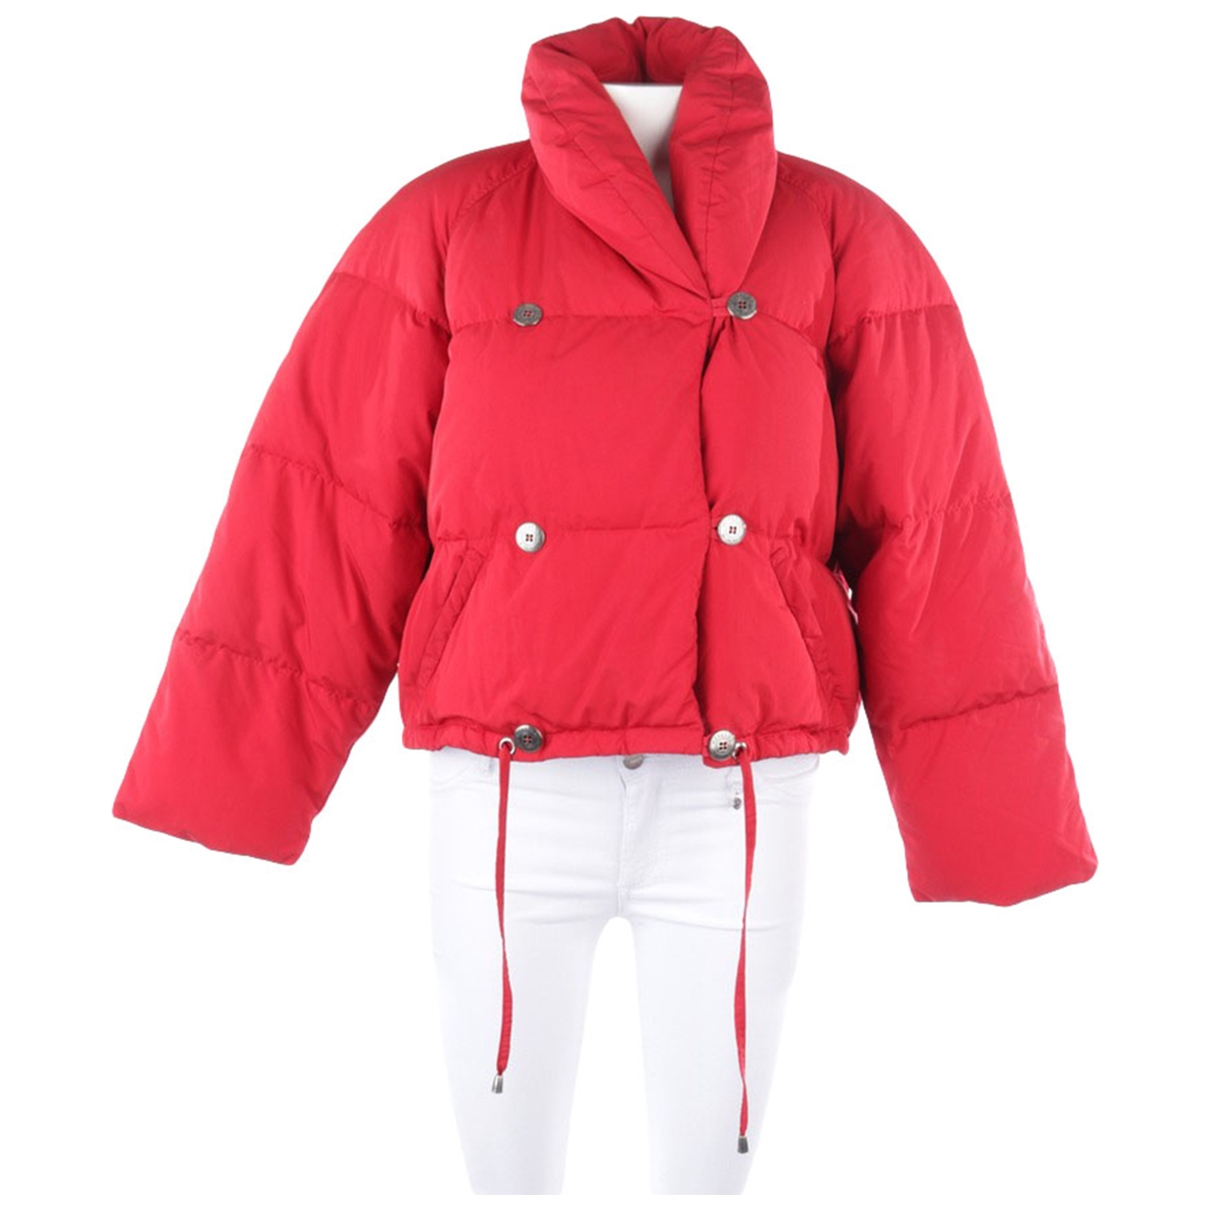 Max Mara \N Red Leather jacket for Women 38 FR